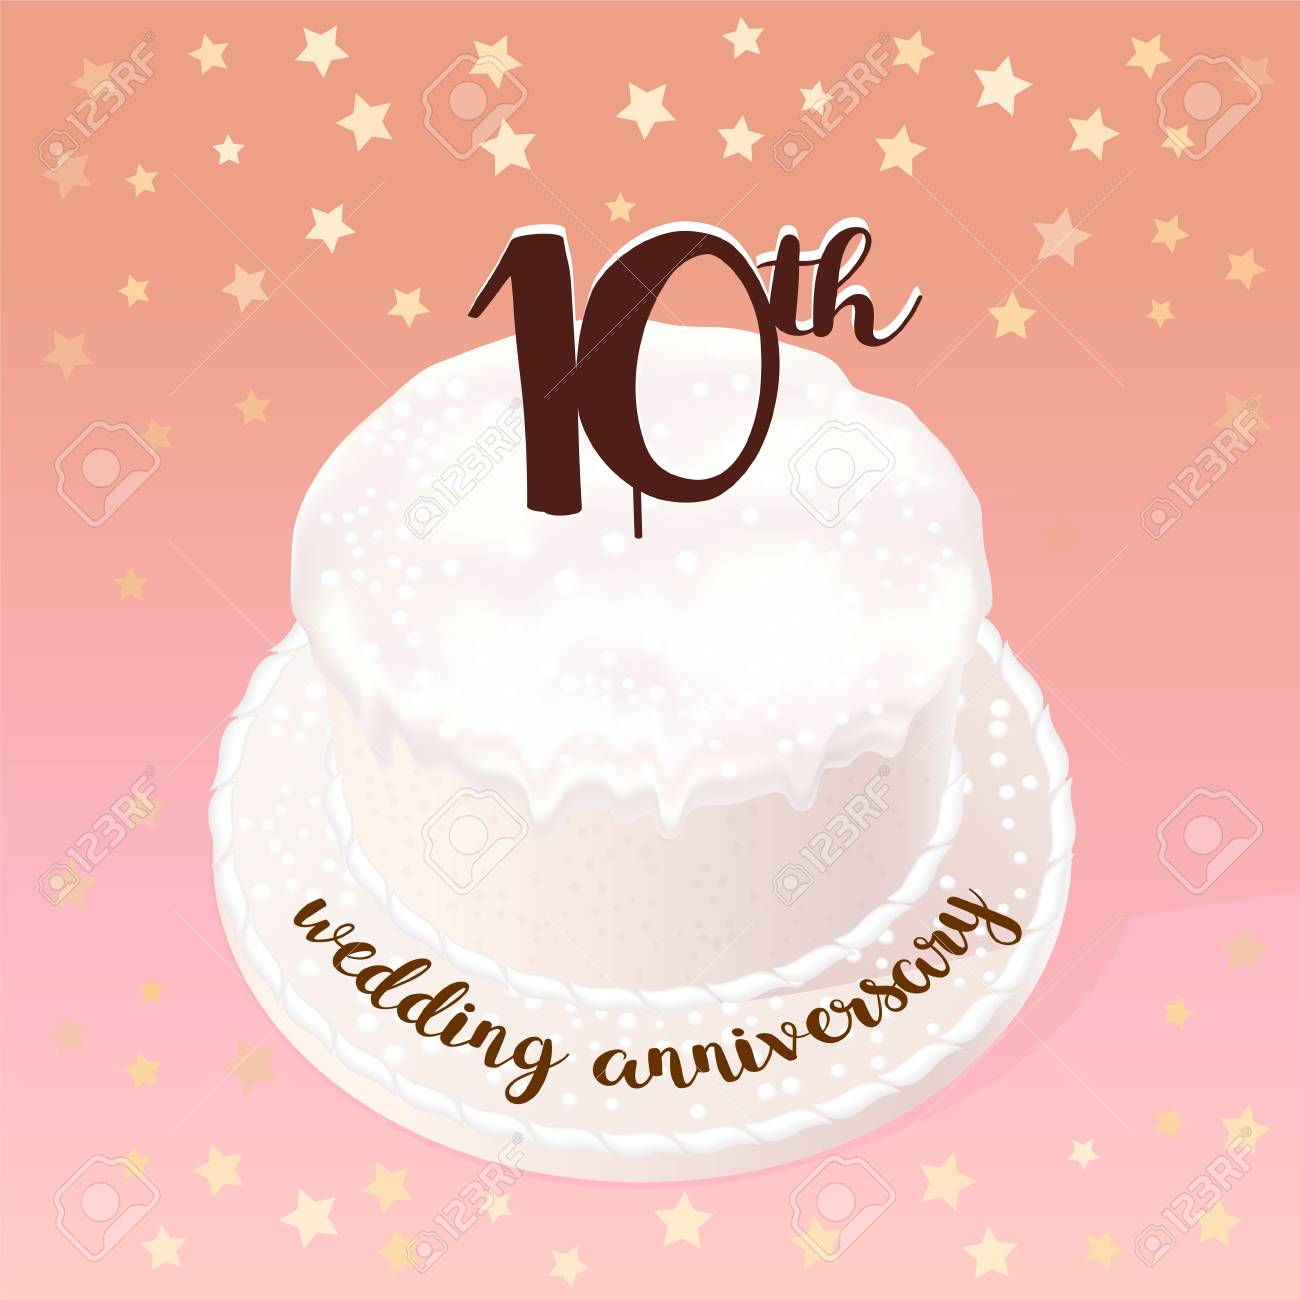 10 Years Of Wedding Or Marriage Vector Icon Illustration Design Royalty Free Cliparts Vectors And Stock Illustration Image 81560464